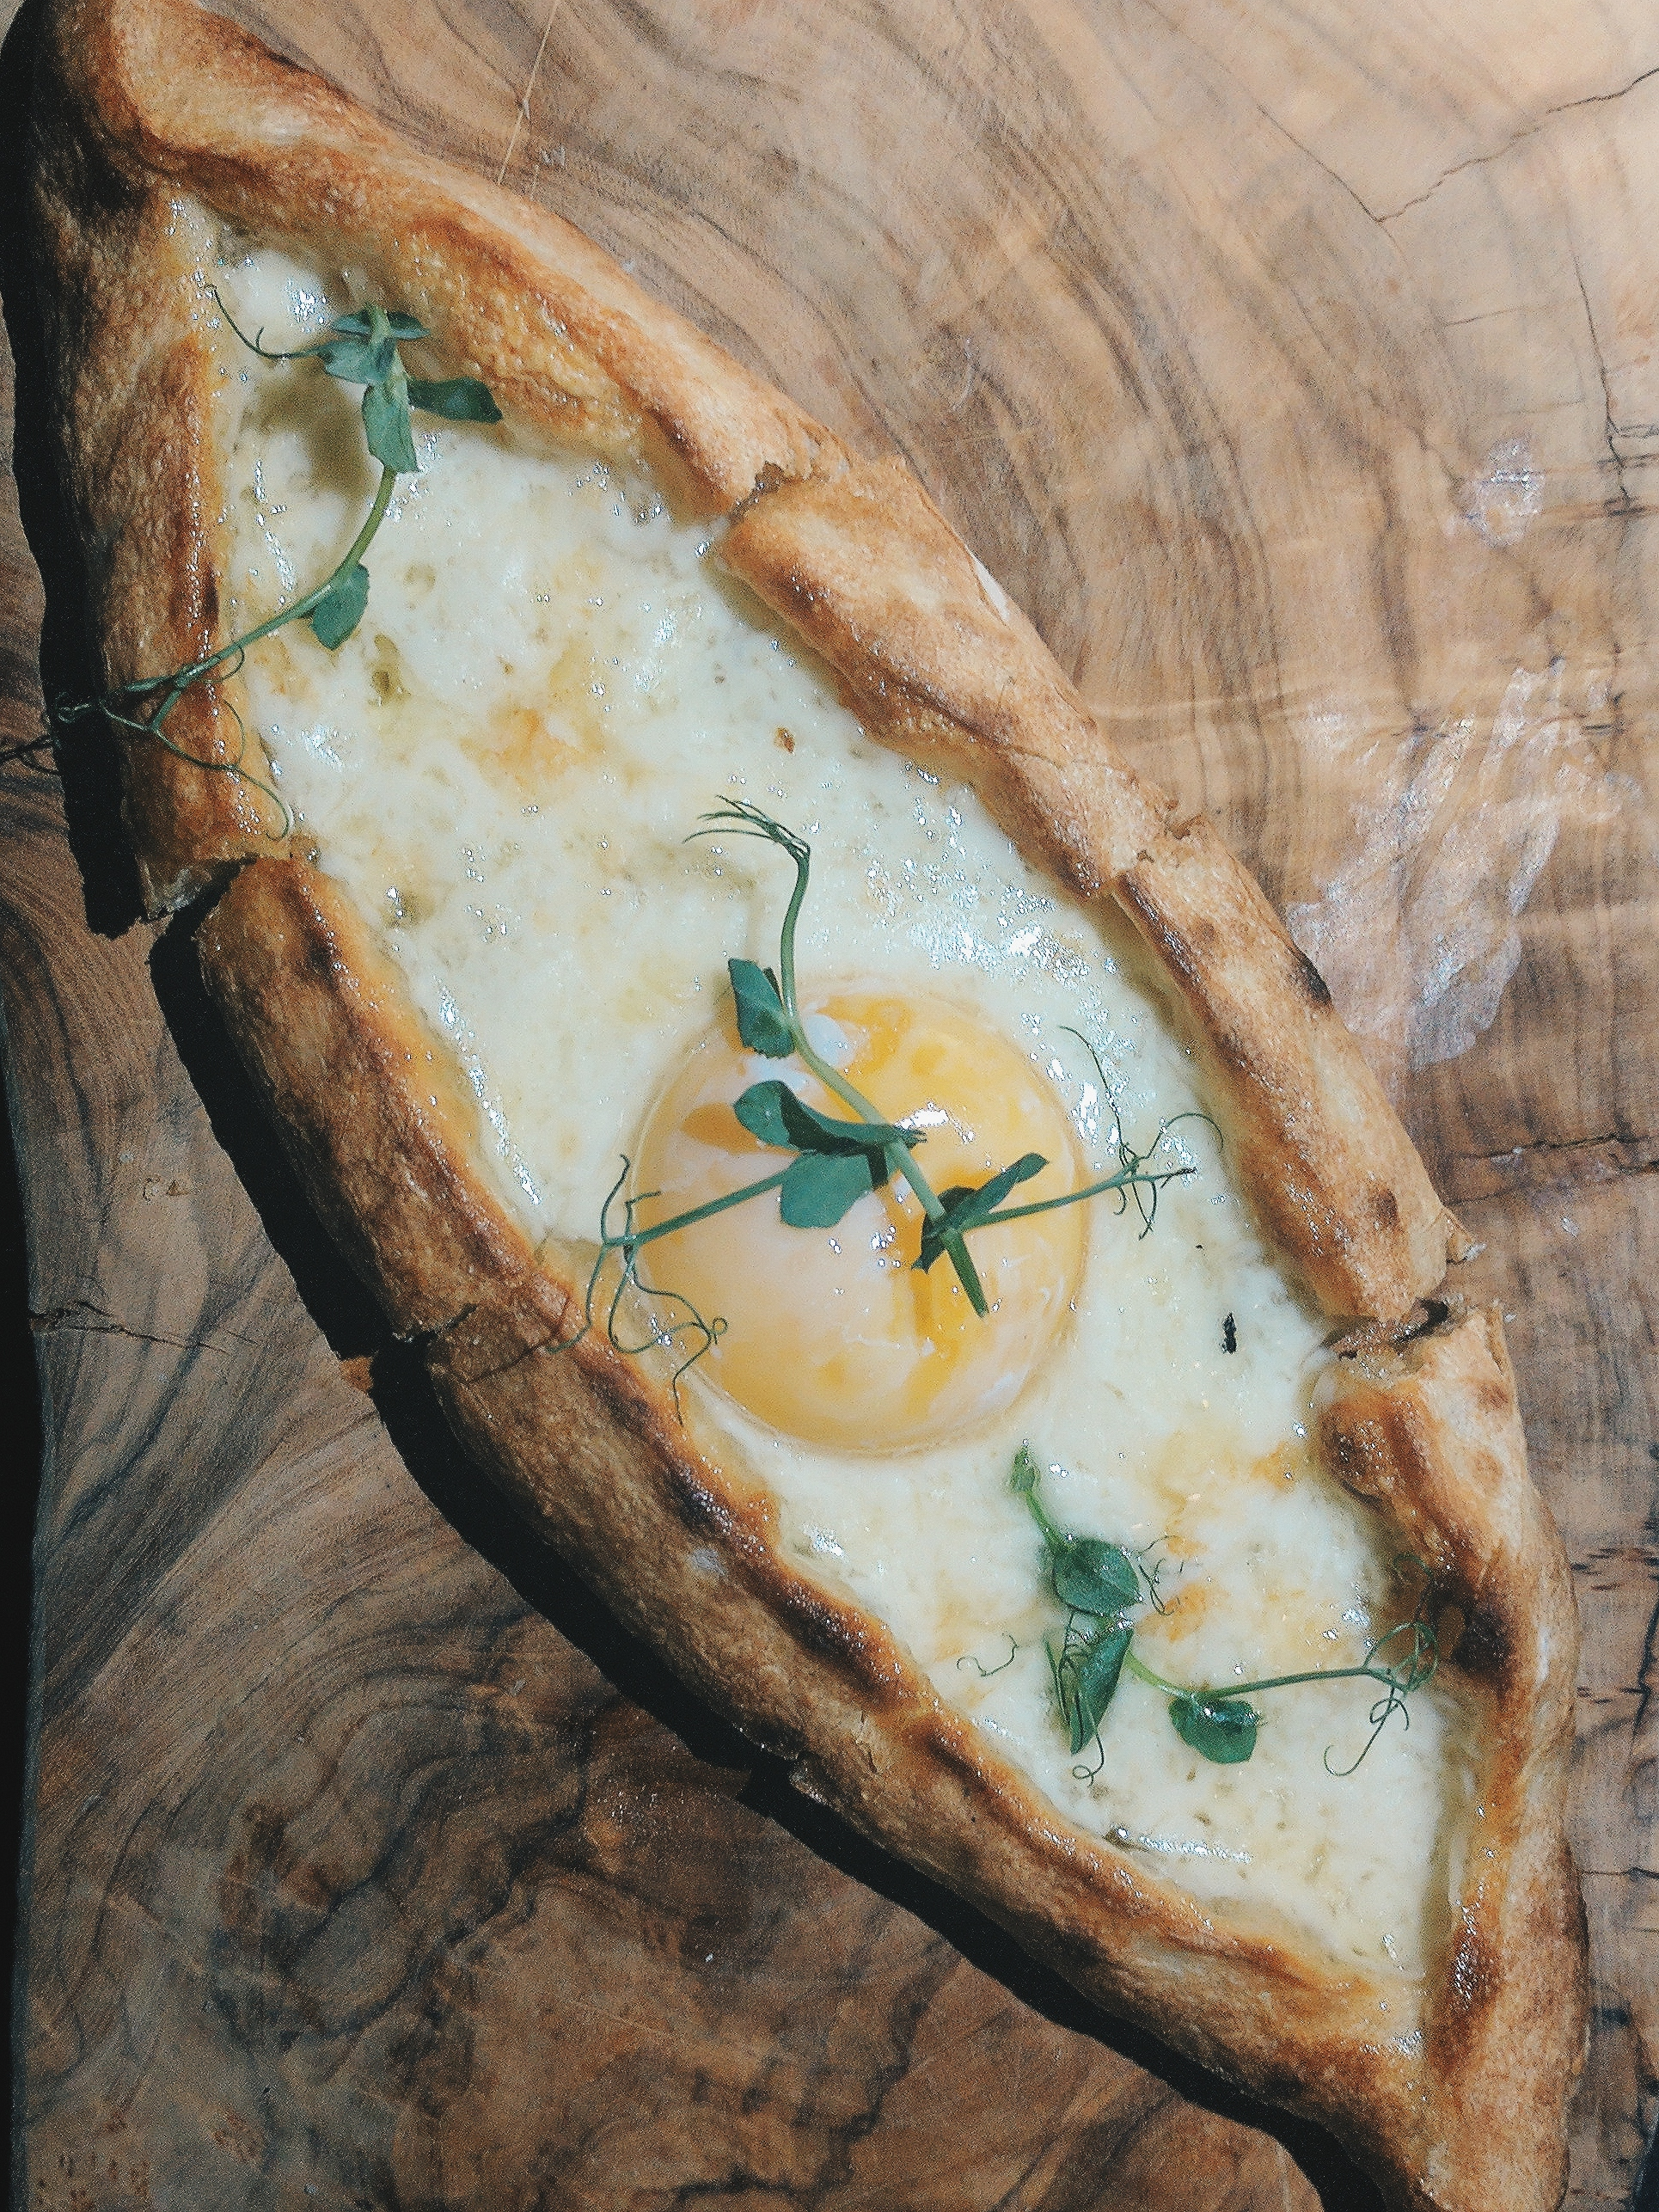 Two Cheese Pide - with slow cooked egg